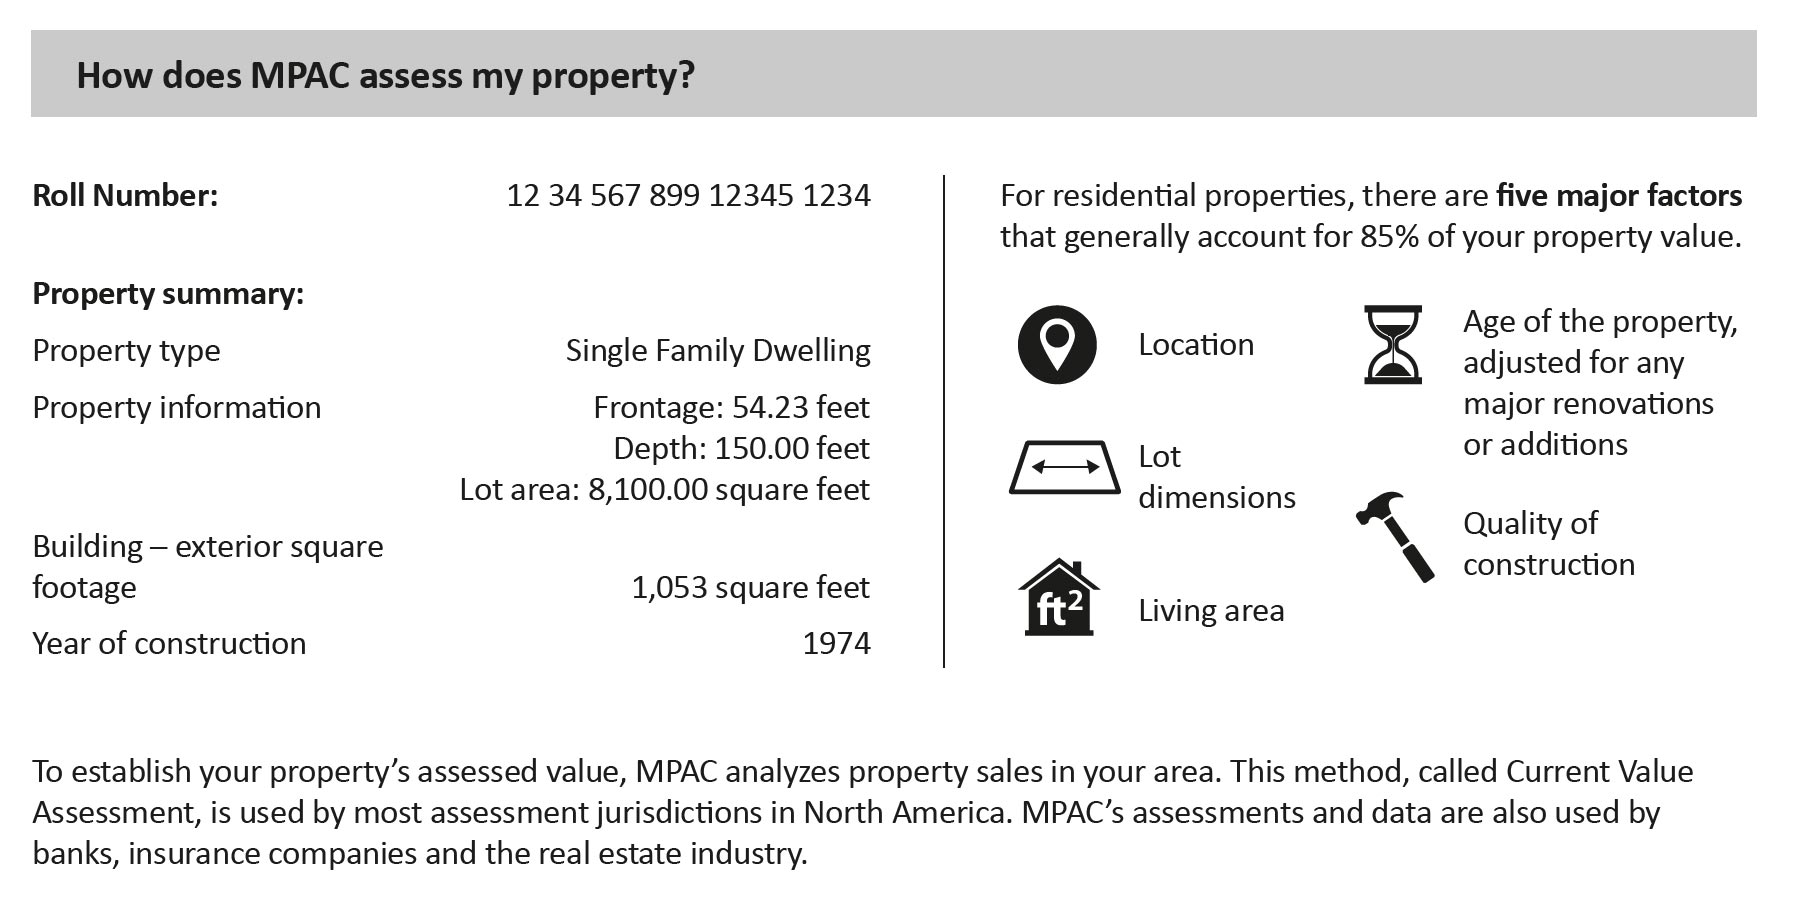 Your assessment shows some details of your property, including type, dimensions, floorspace & year of construction.